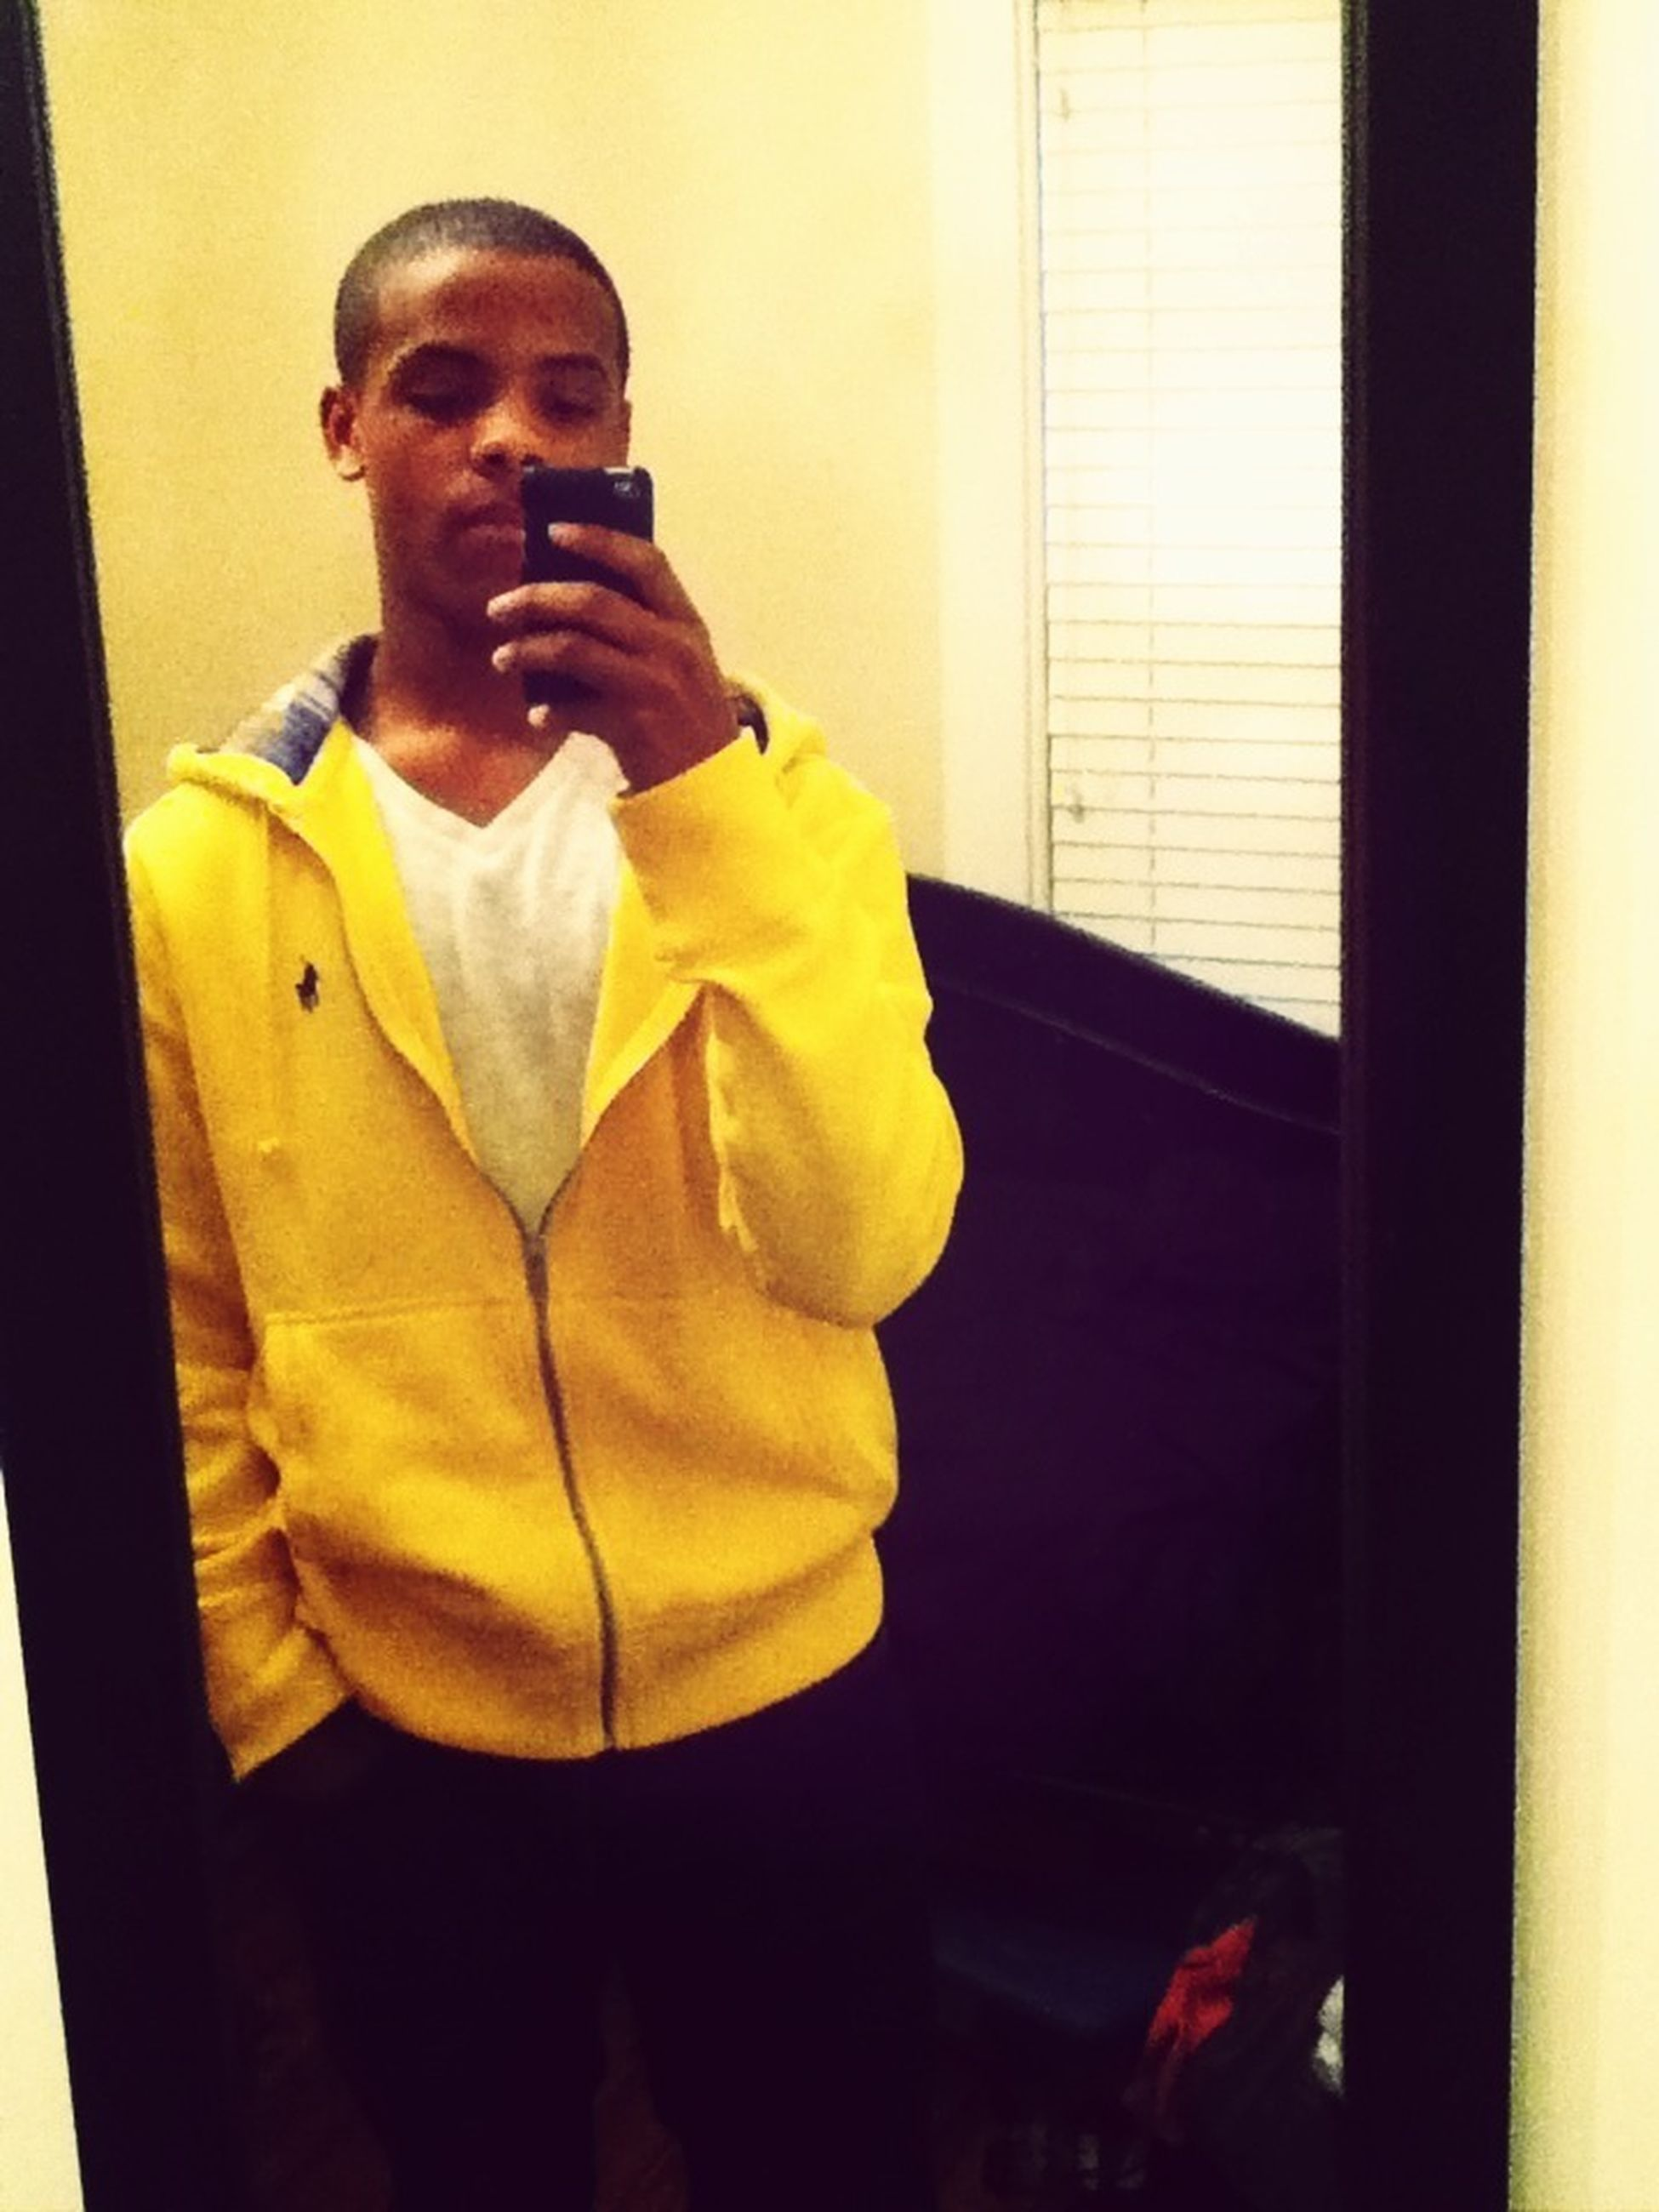 person, indoors, lifestyles, casual clothing, young adult, young men, front view, leisure activity, three quarter length, looking at camera, portrait, holding, standing, full length, smiling, sitting, yellow